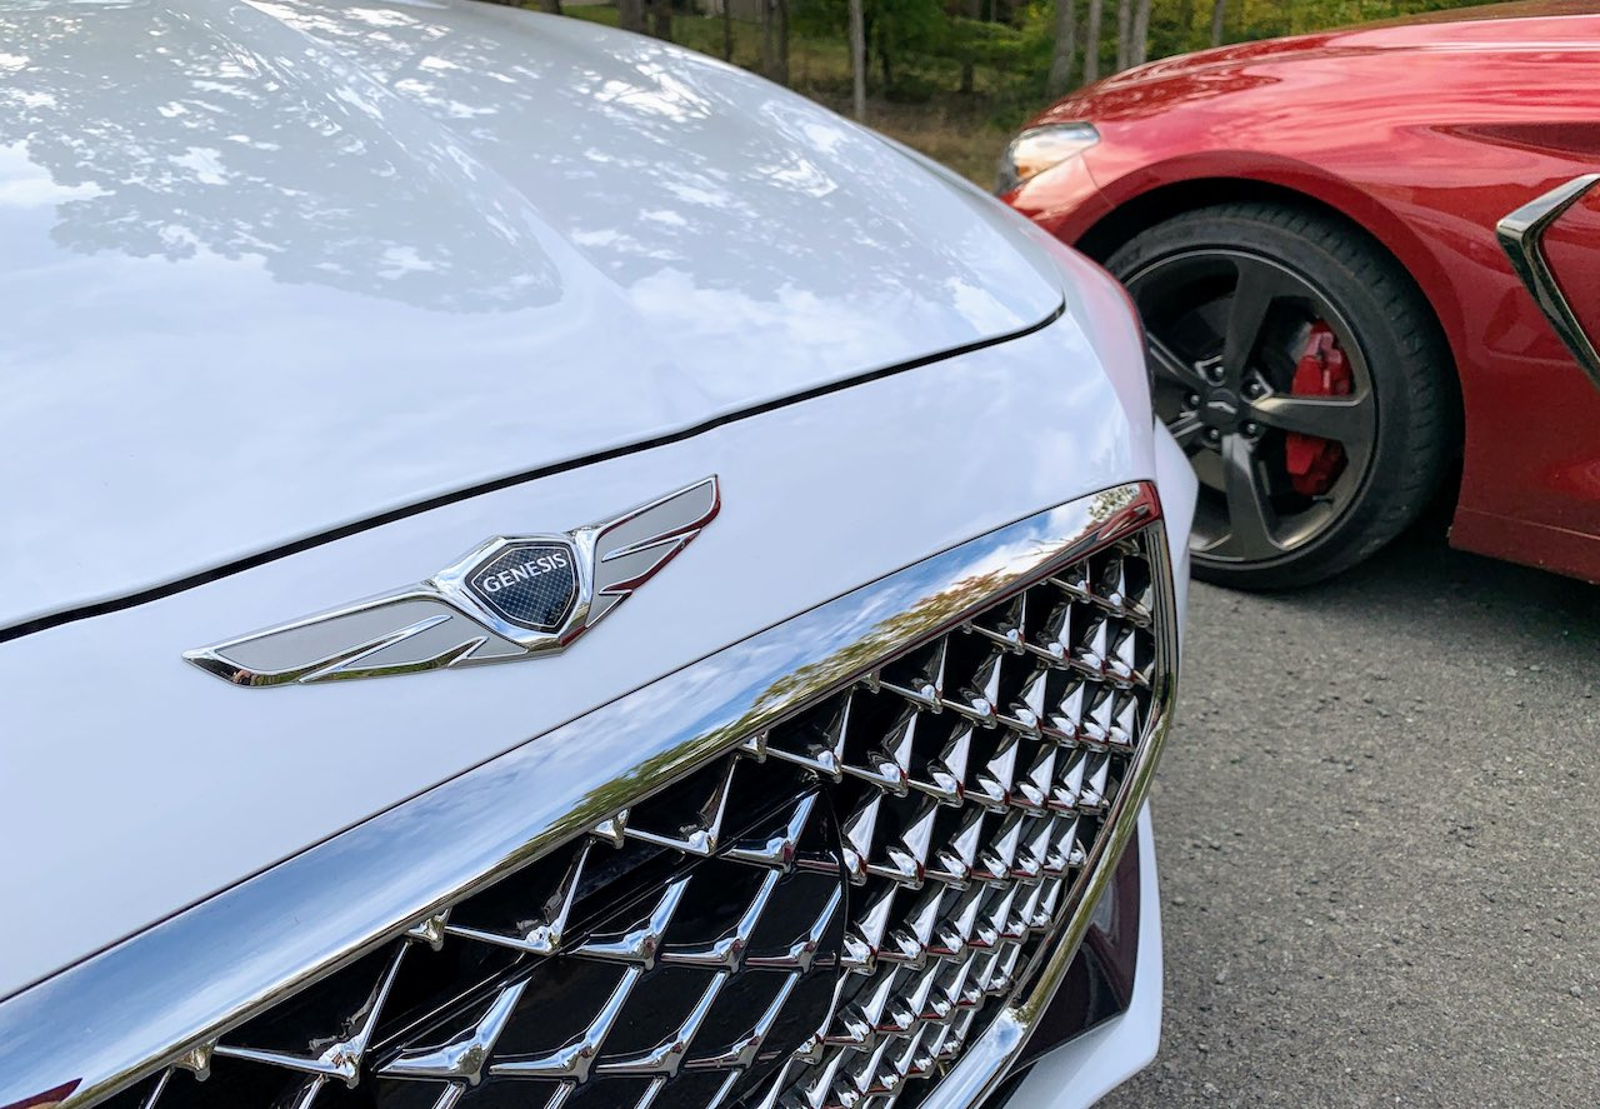 Illustration for article titled 2019 Genesis G70 RWD Comparison: 2.0T Manual vs. 3.3T Automatic